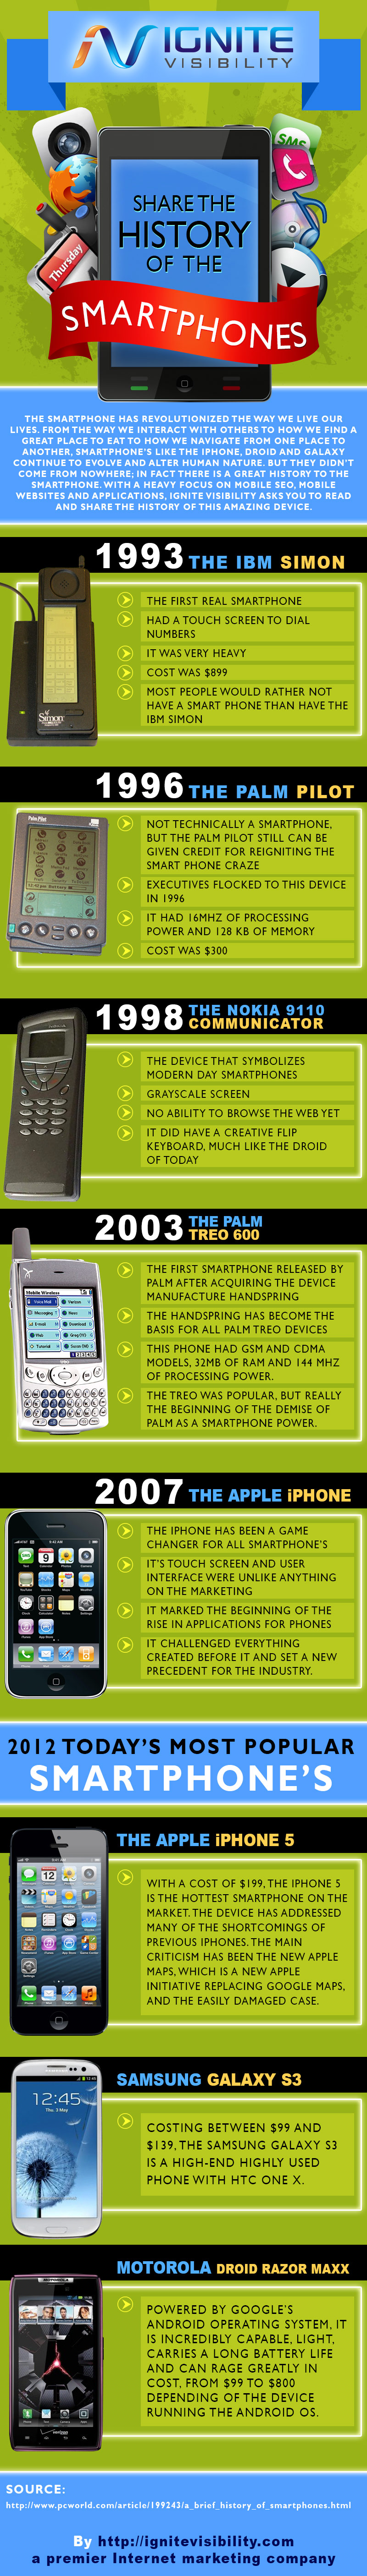 The History of the Smartphone